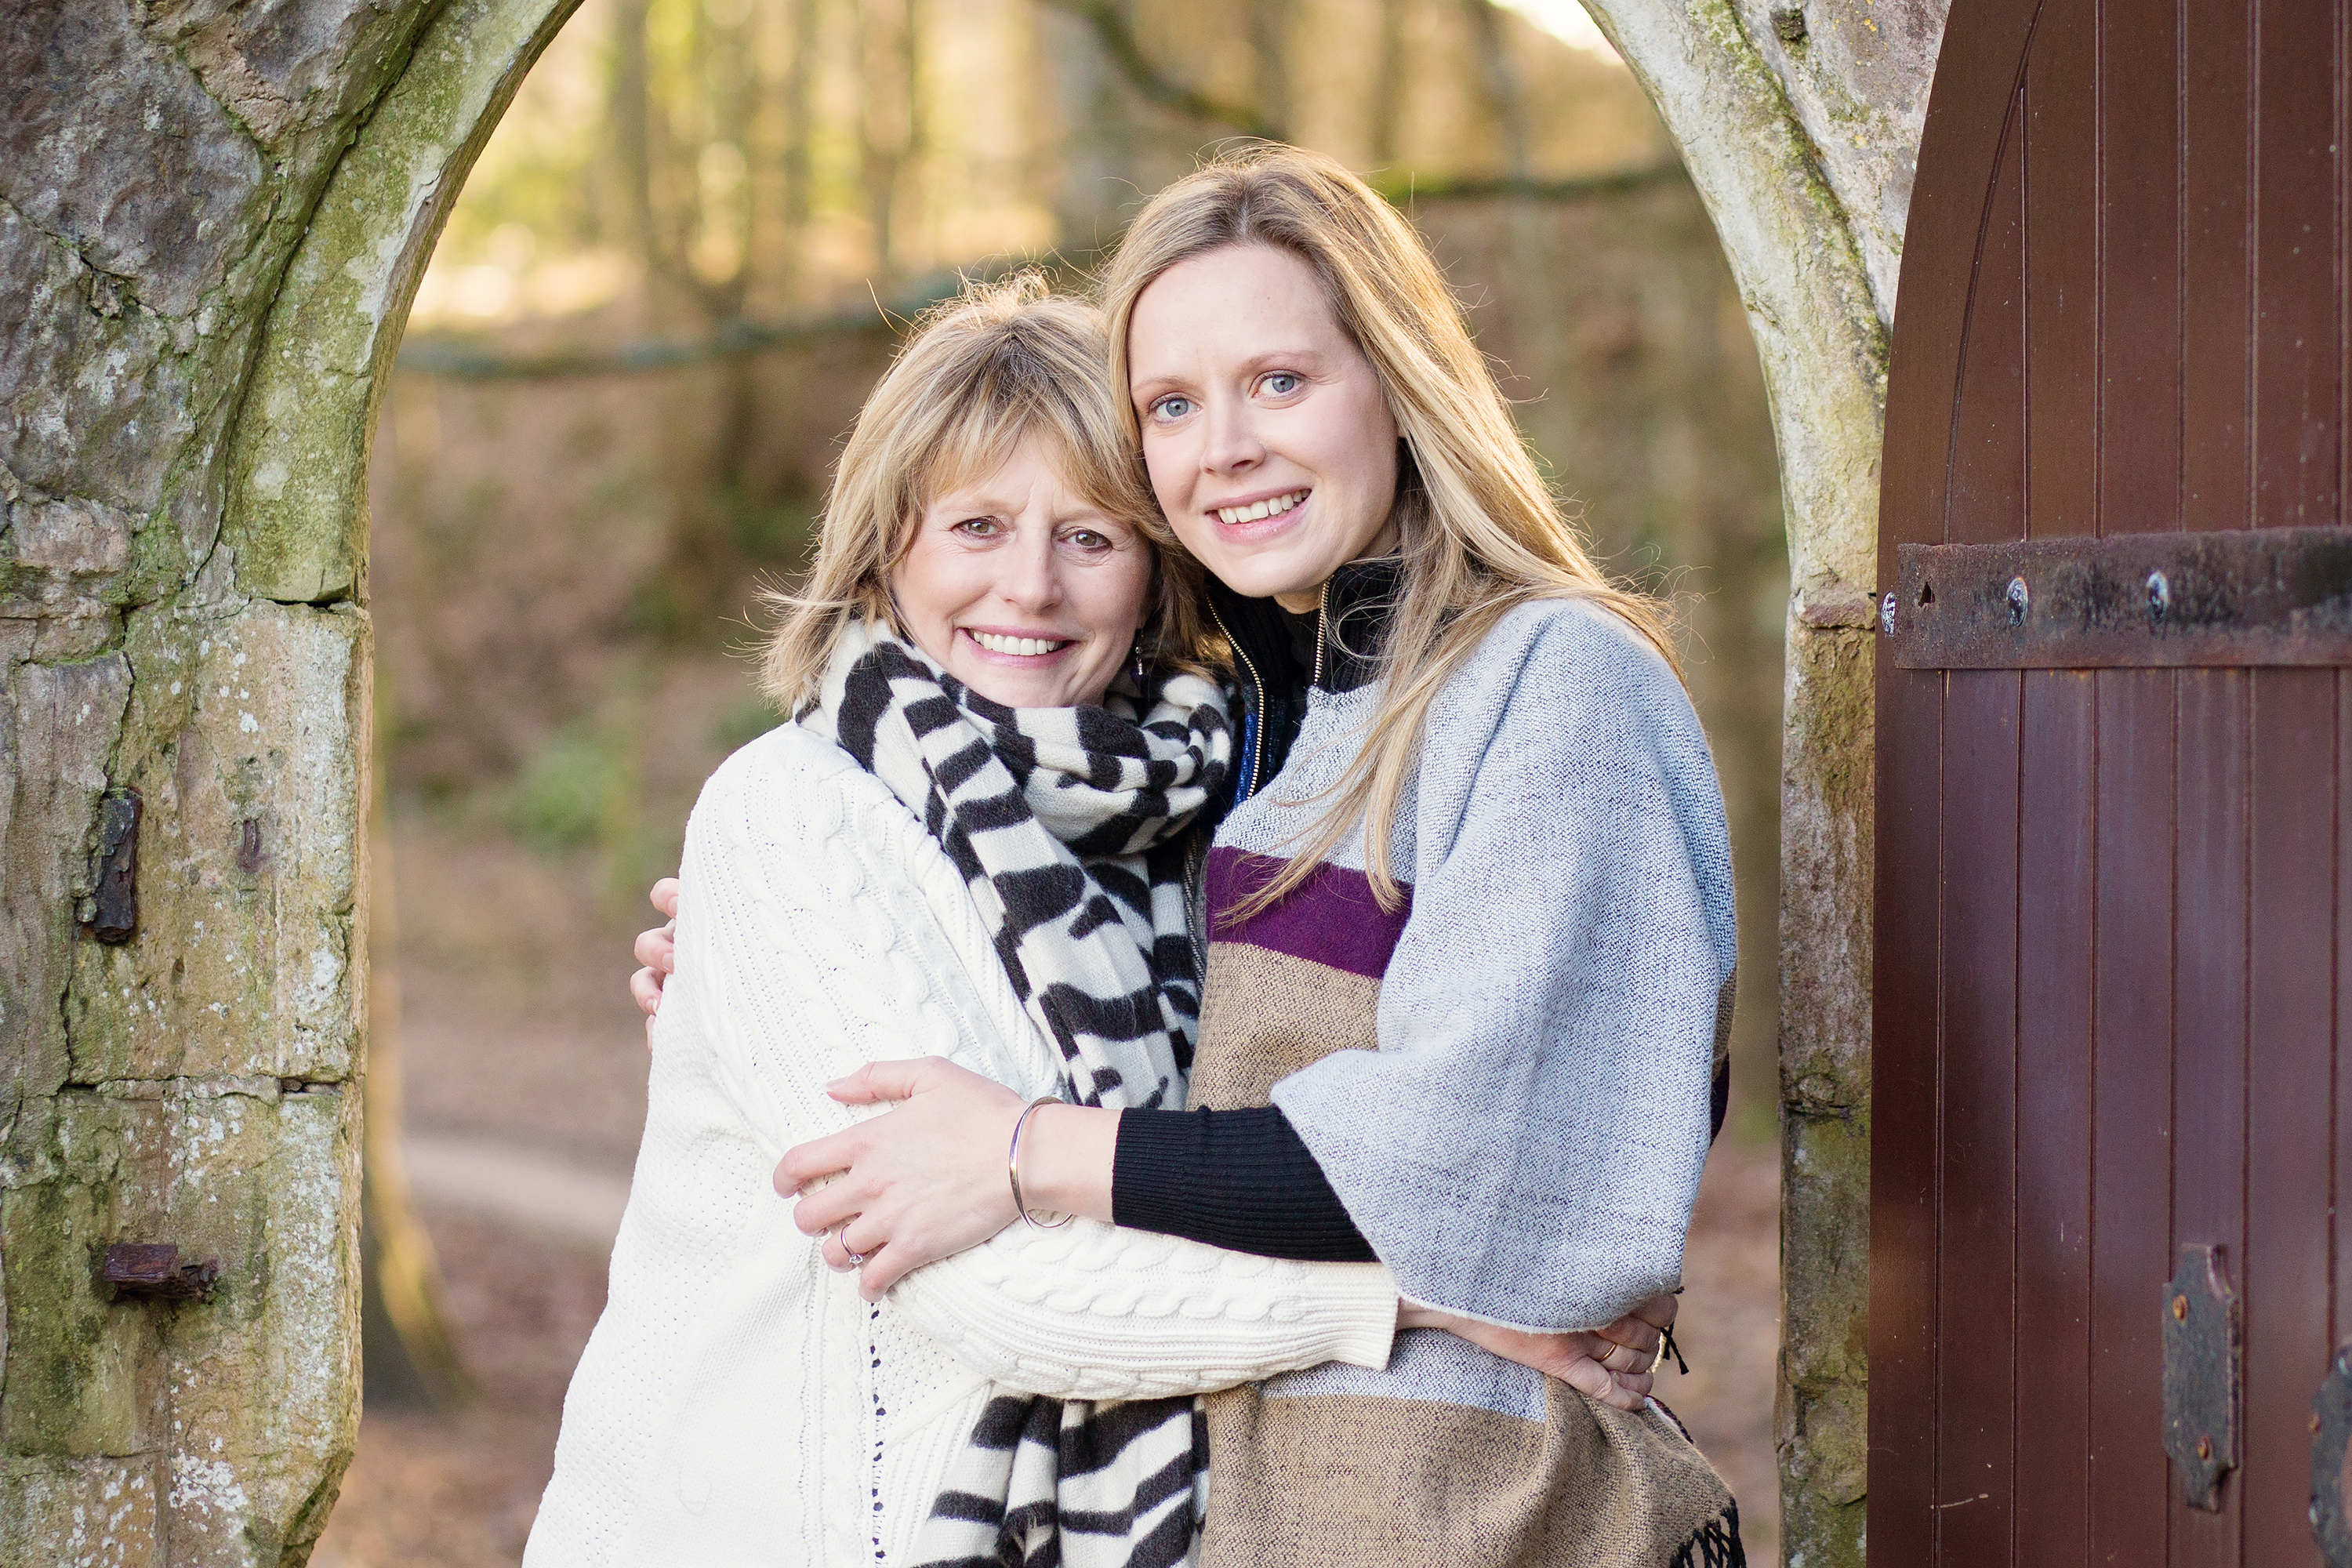 Mum and daughter photo shoot in Dunraven Gardens